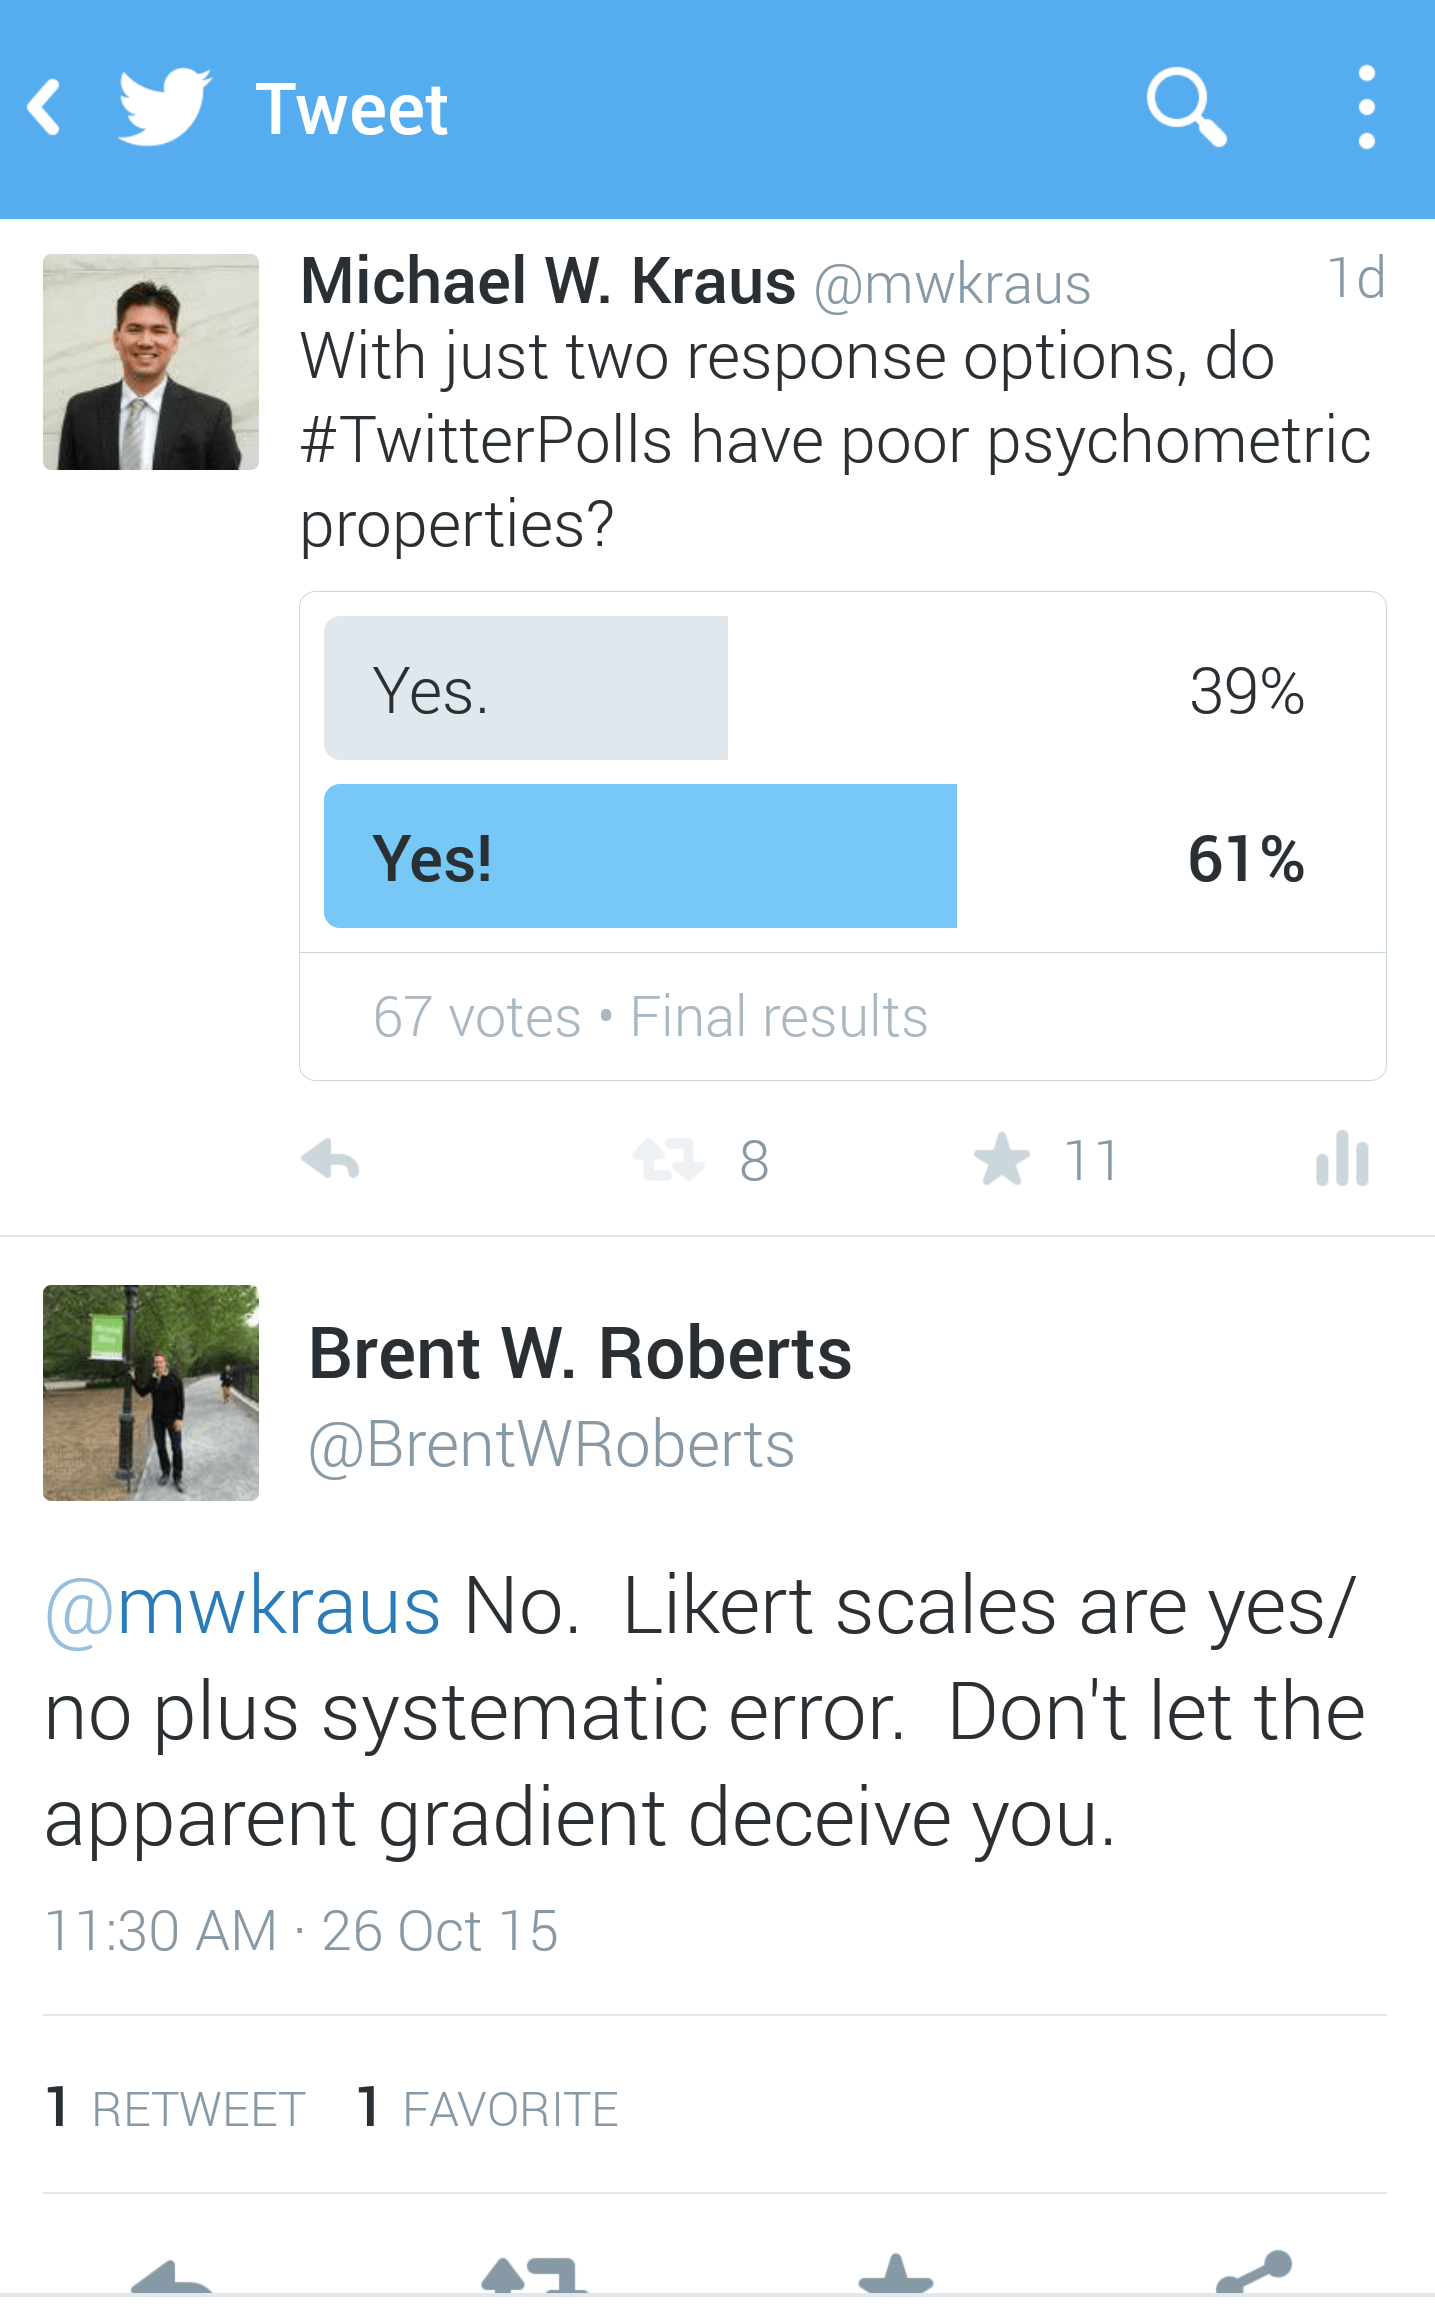 Yes Or No Are Likert Scales Always Preferable To Dichotomous Rating Scales